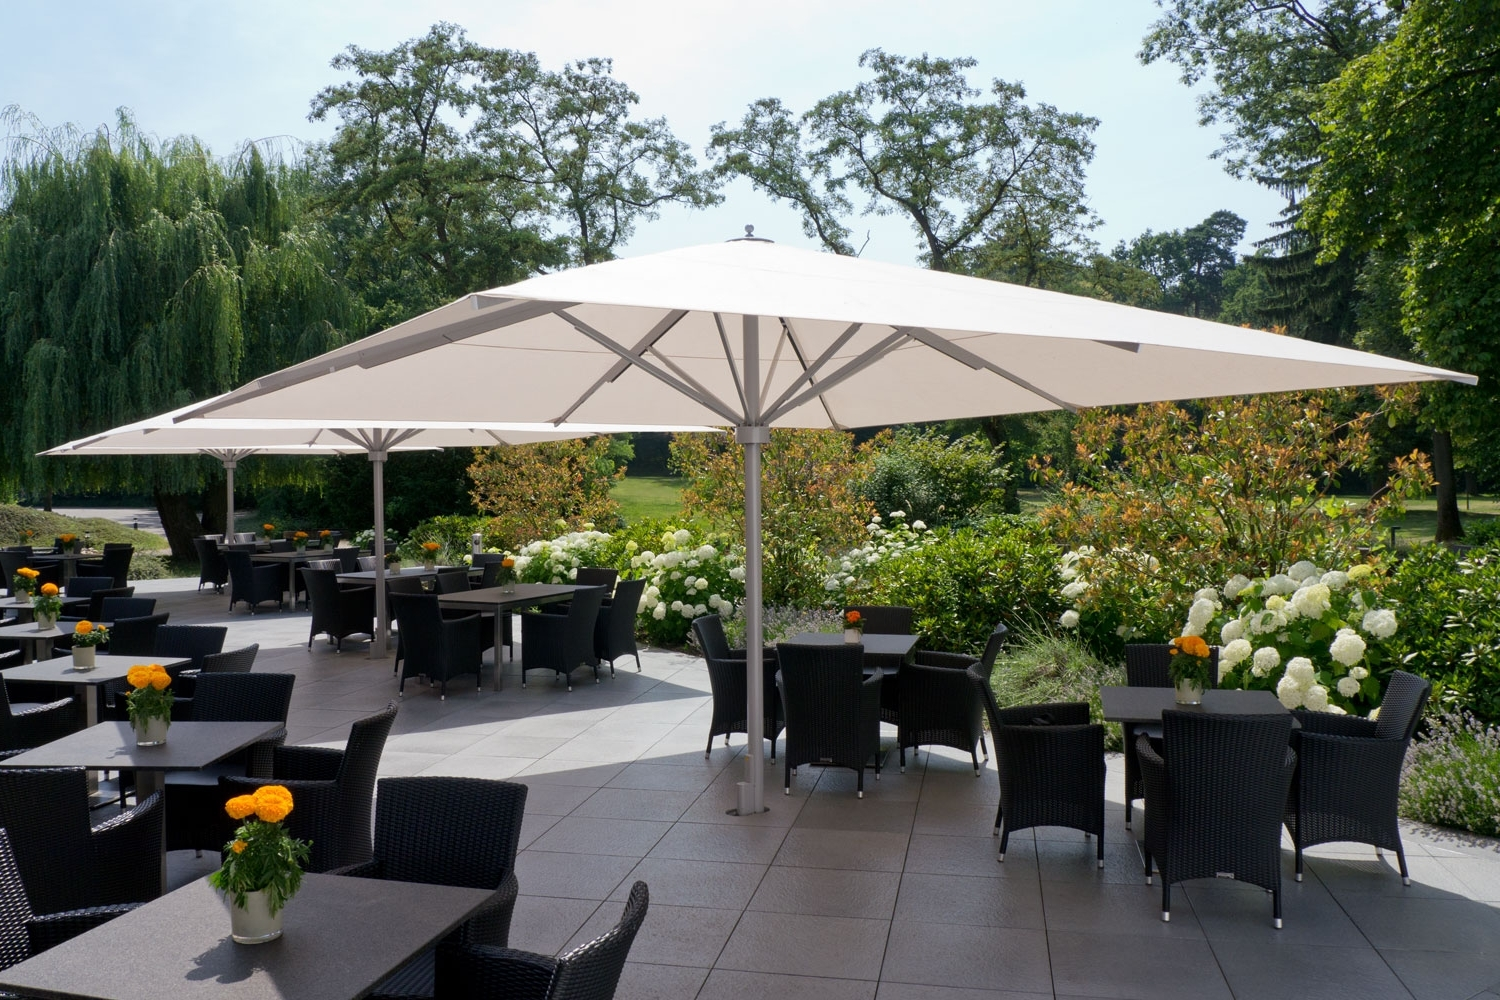 Caravita – Exclusive Commercial Patio Umbrellas Intended For Best And Newest European Patio Umbrellas (Gallery 14 of 20)